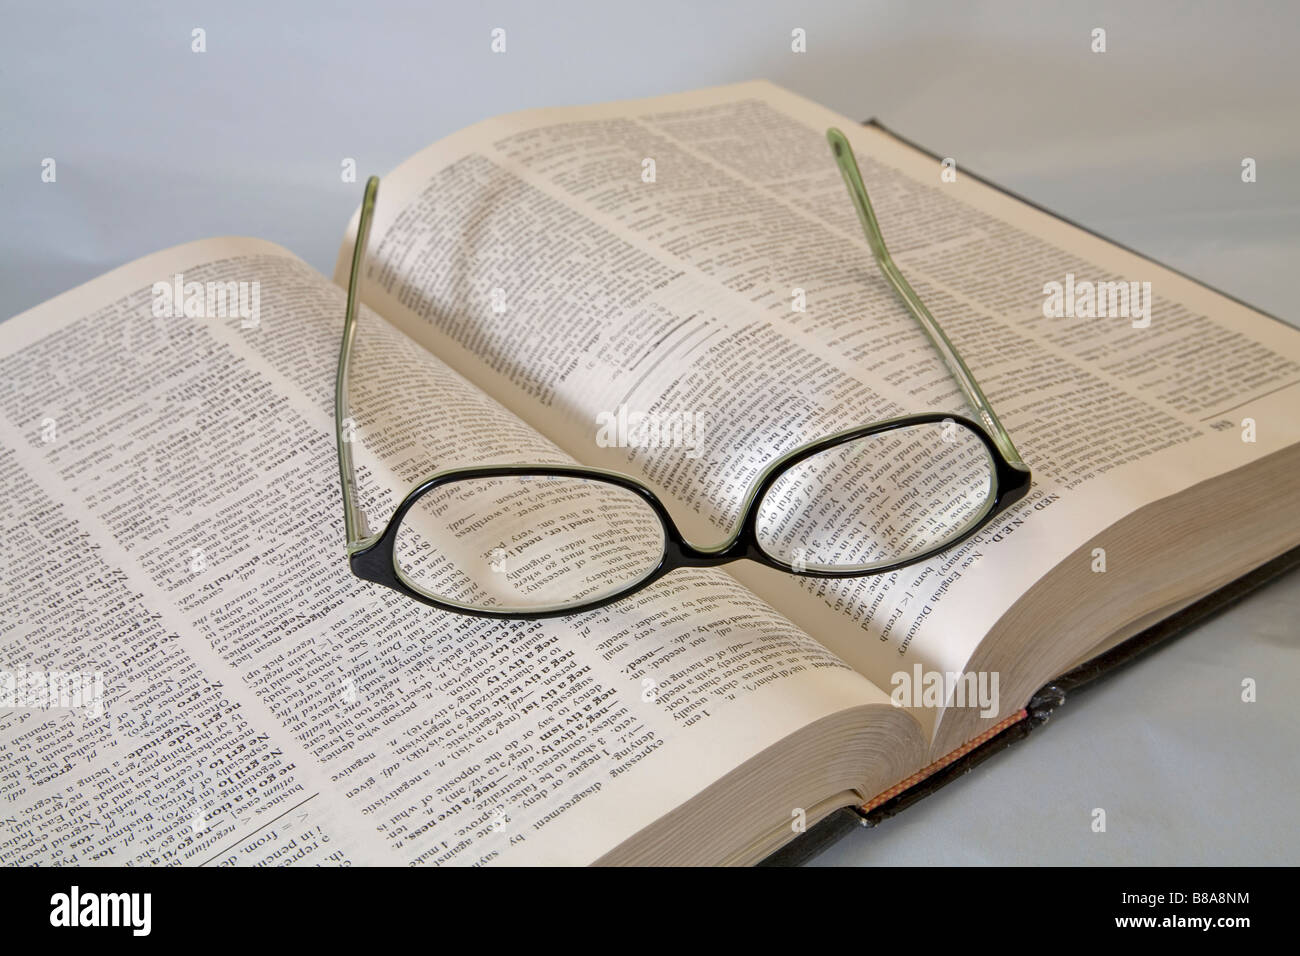 A pair of common reading eye glasses or spectacles lying on an open dictionary - Stock Image